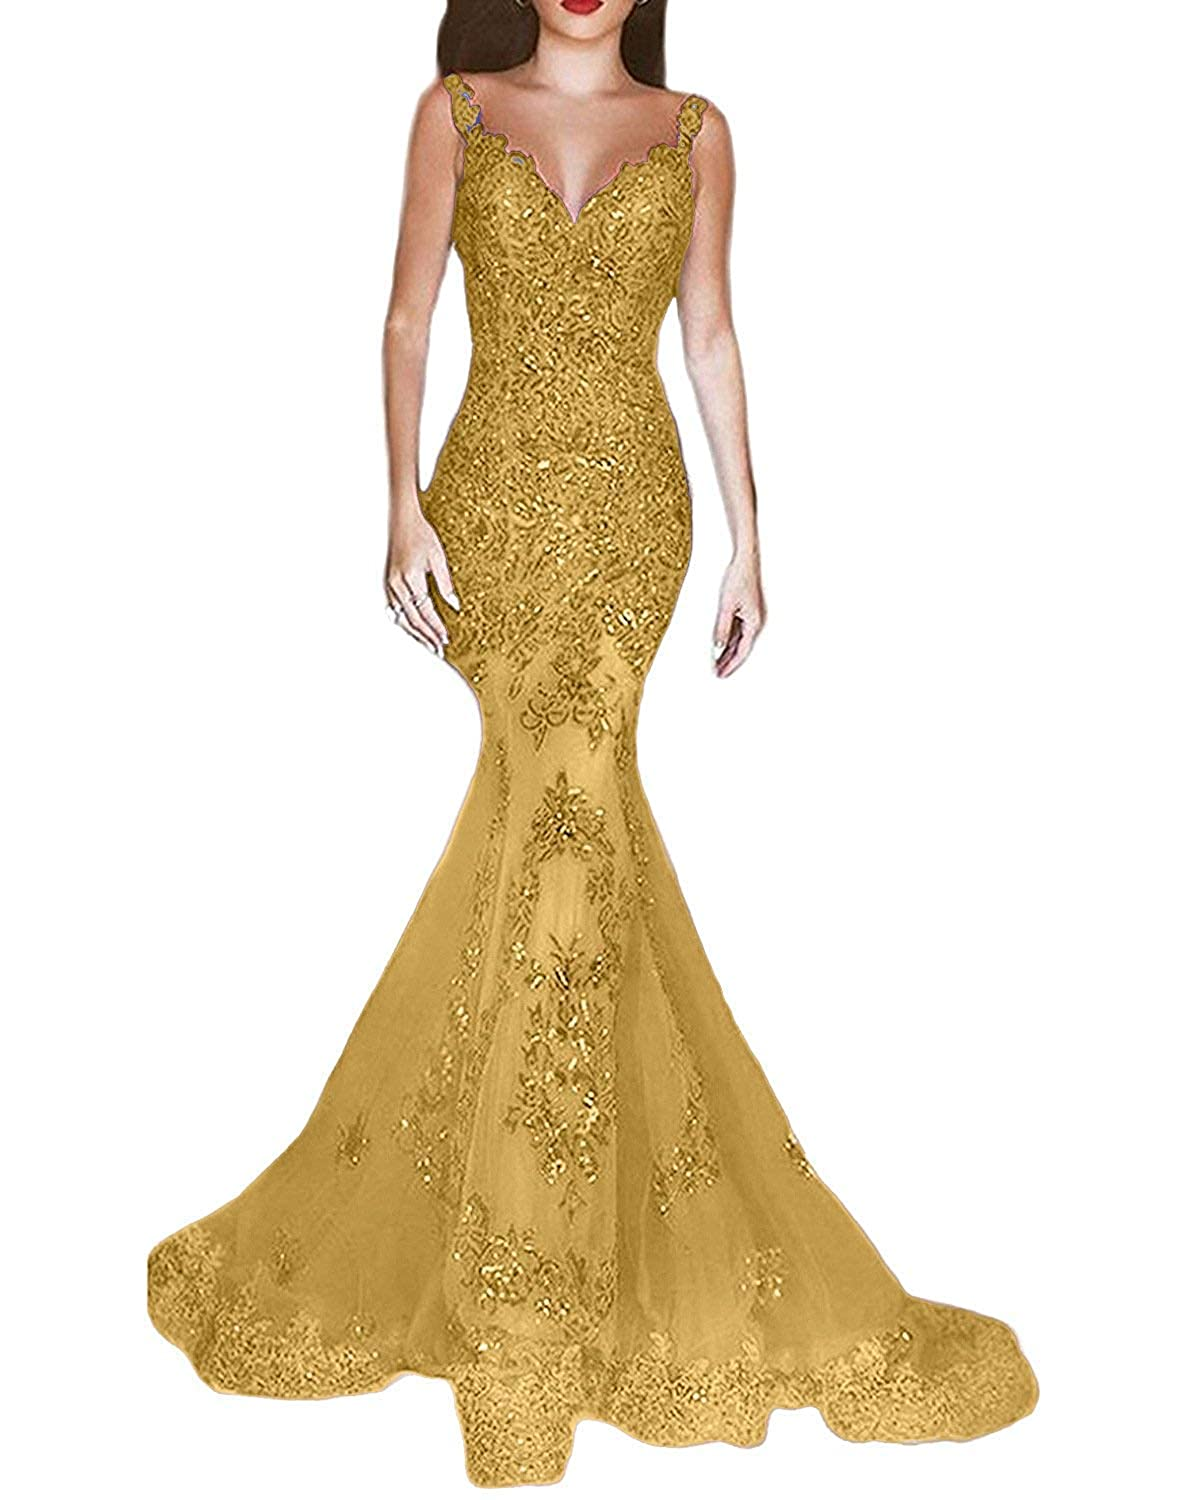 gold ASBridal Lace Evening Dress Mermaid Prom Dresses Long Sequin Formal Party Evening Gowns Sheer Back